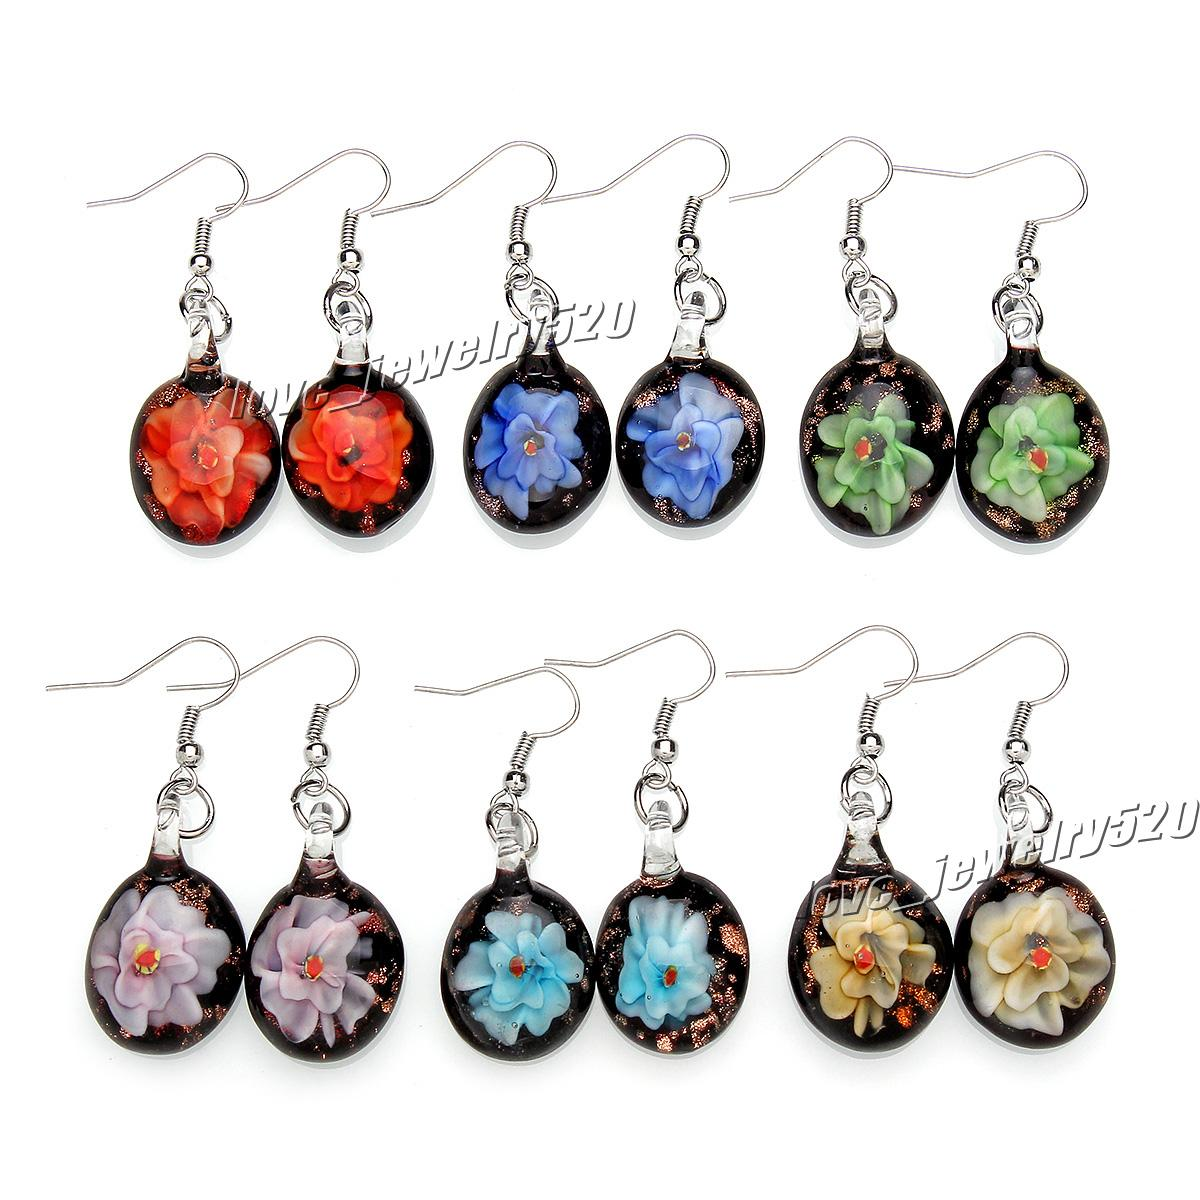 Fashin wholesale 6Pairs handmade mix color Italian Gold sand Round 3D Flower Lampwork murano glass Earrings Free shipping